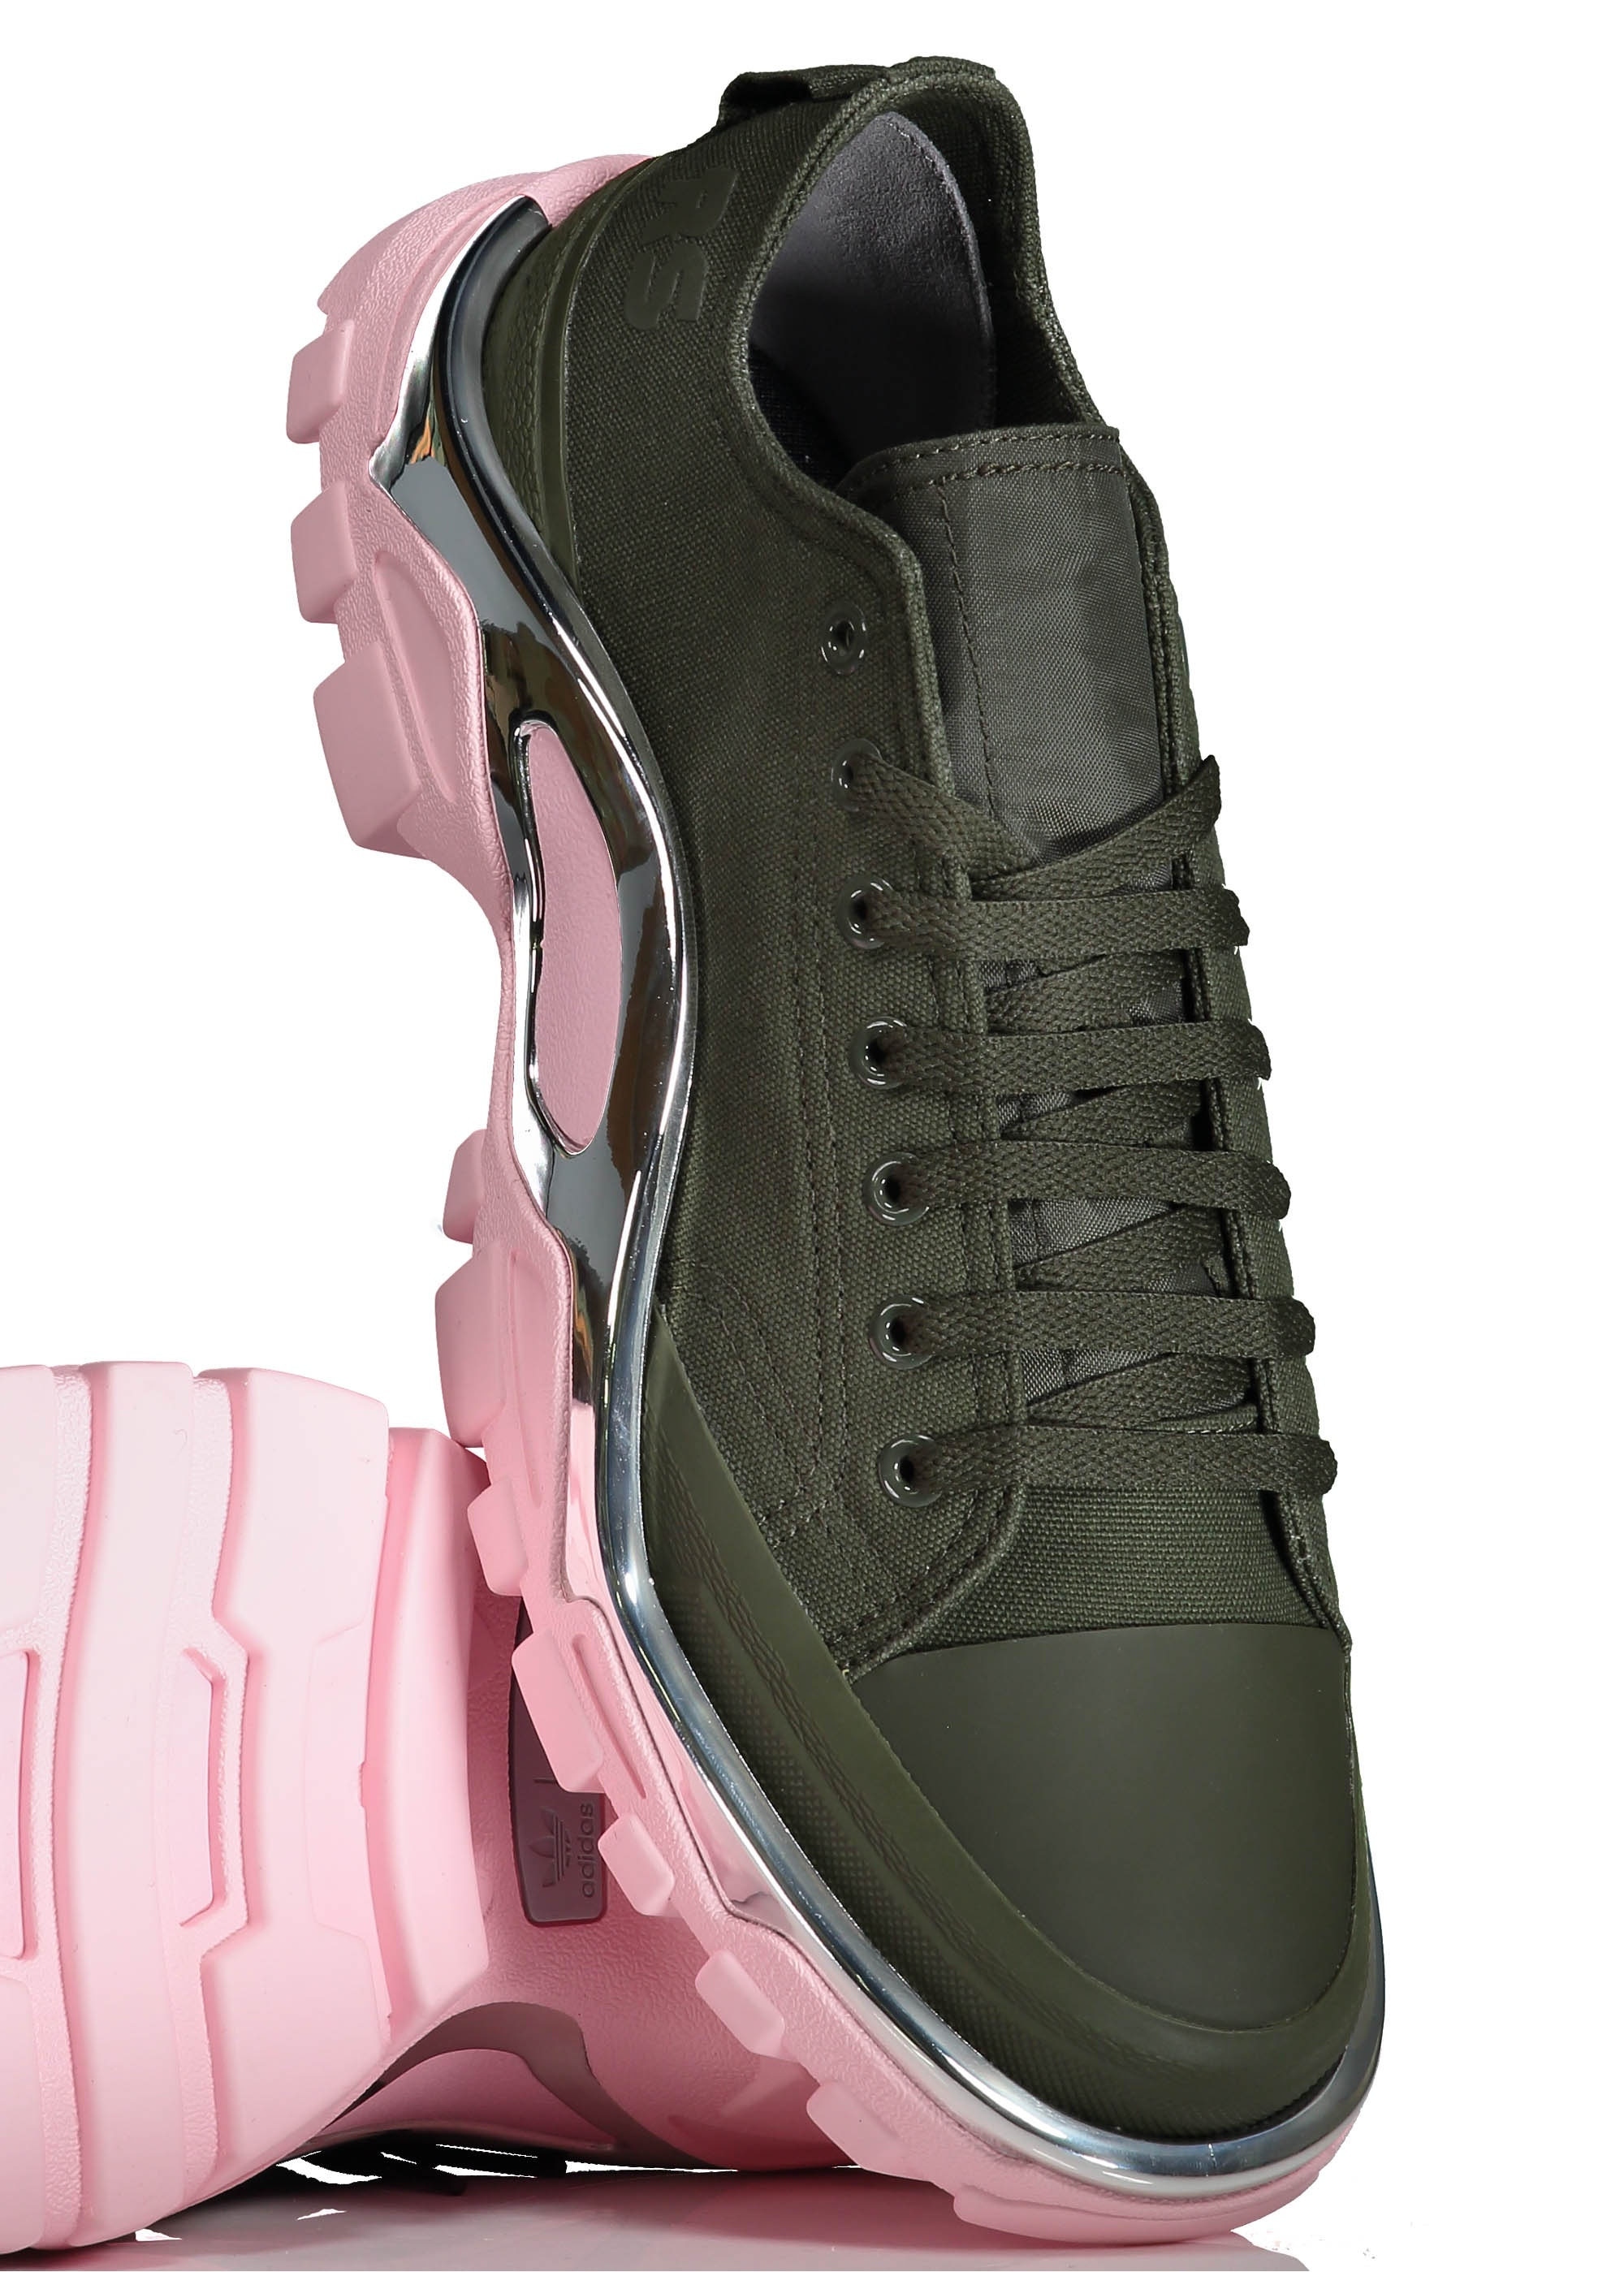 adidas by Raf Simons RS Detroit Runner - Green   Pink - Trainers ... 311d5f2ff